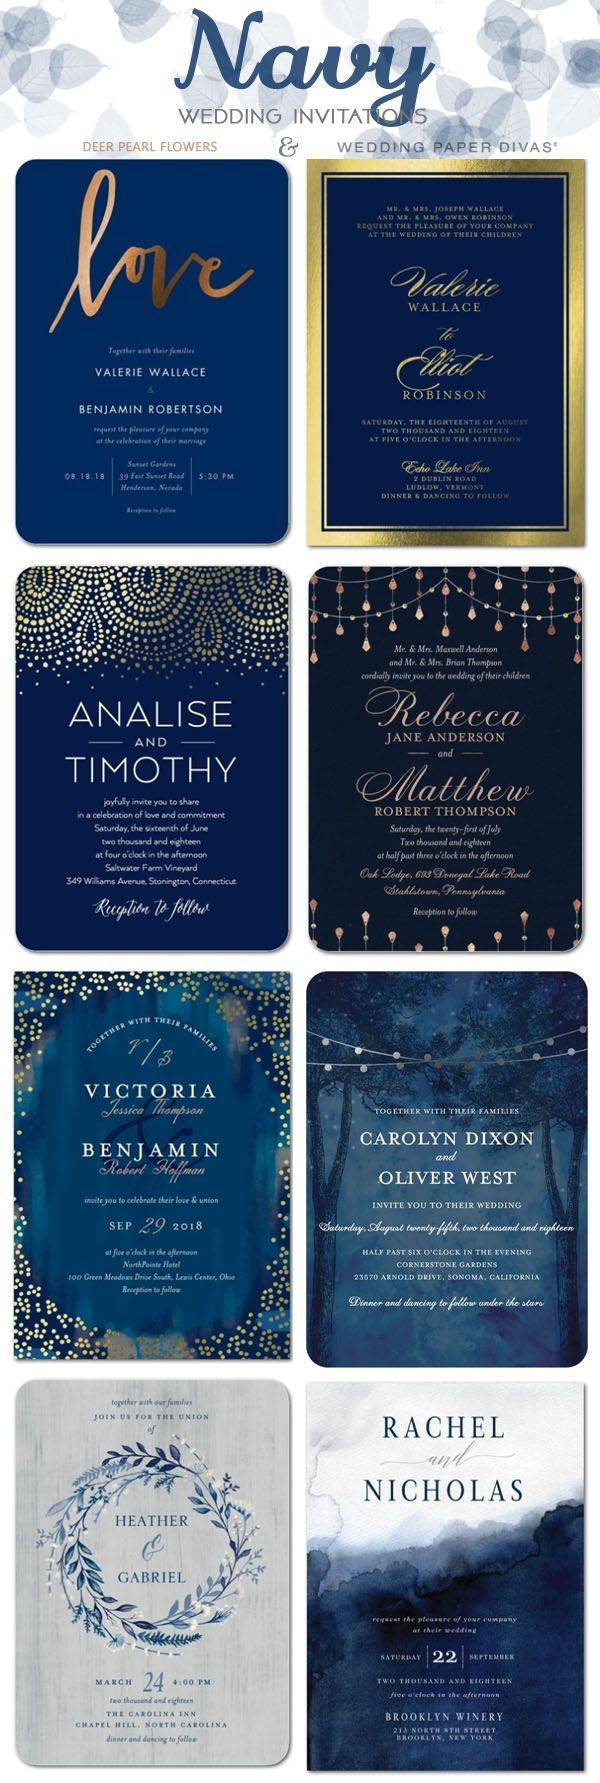 wedding card invitation cards online%0A Now trending  navy wedding invitations from Elli com   Wedding Ideas    Pinterest   Navy weddings  Navy and Weddings